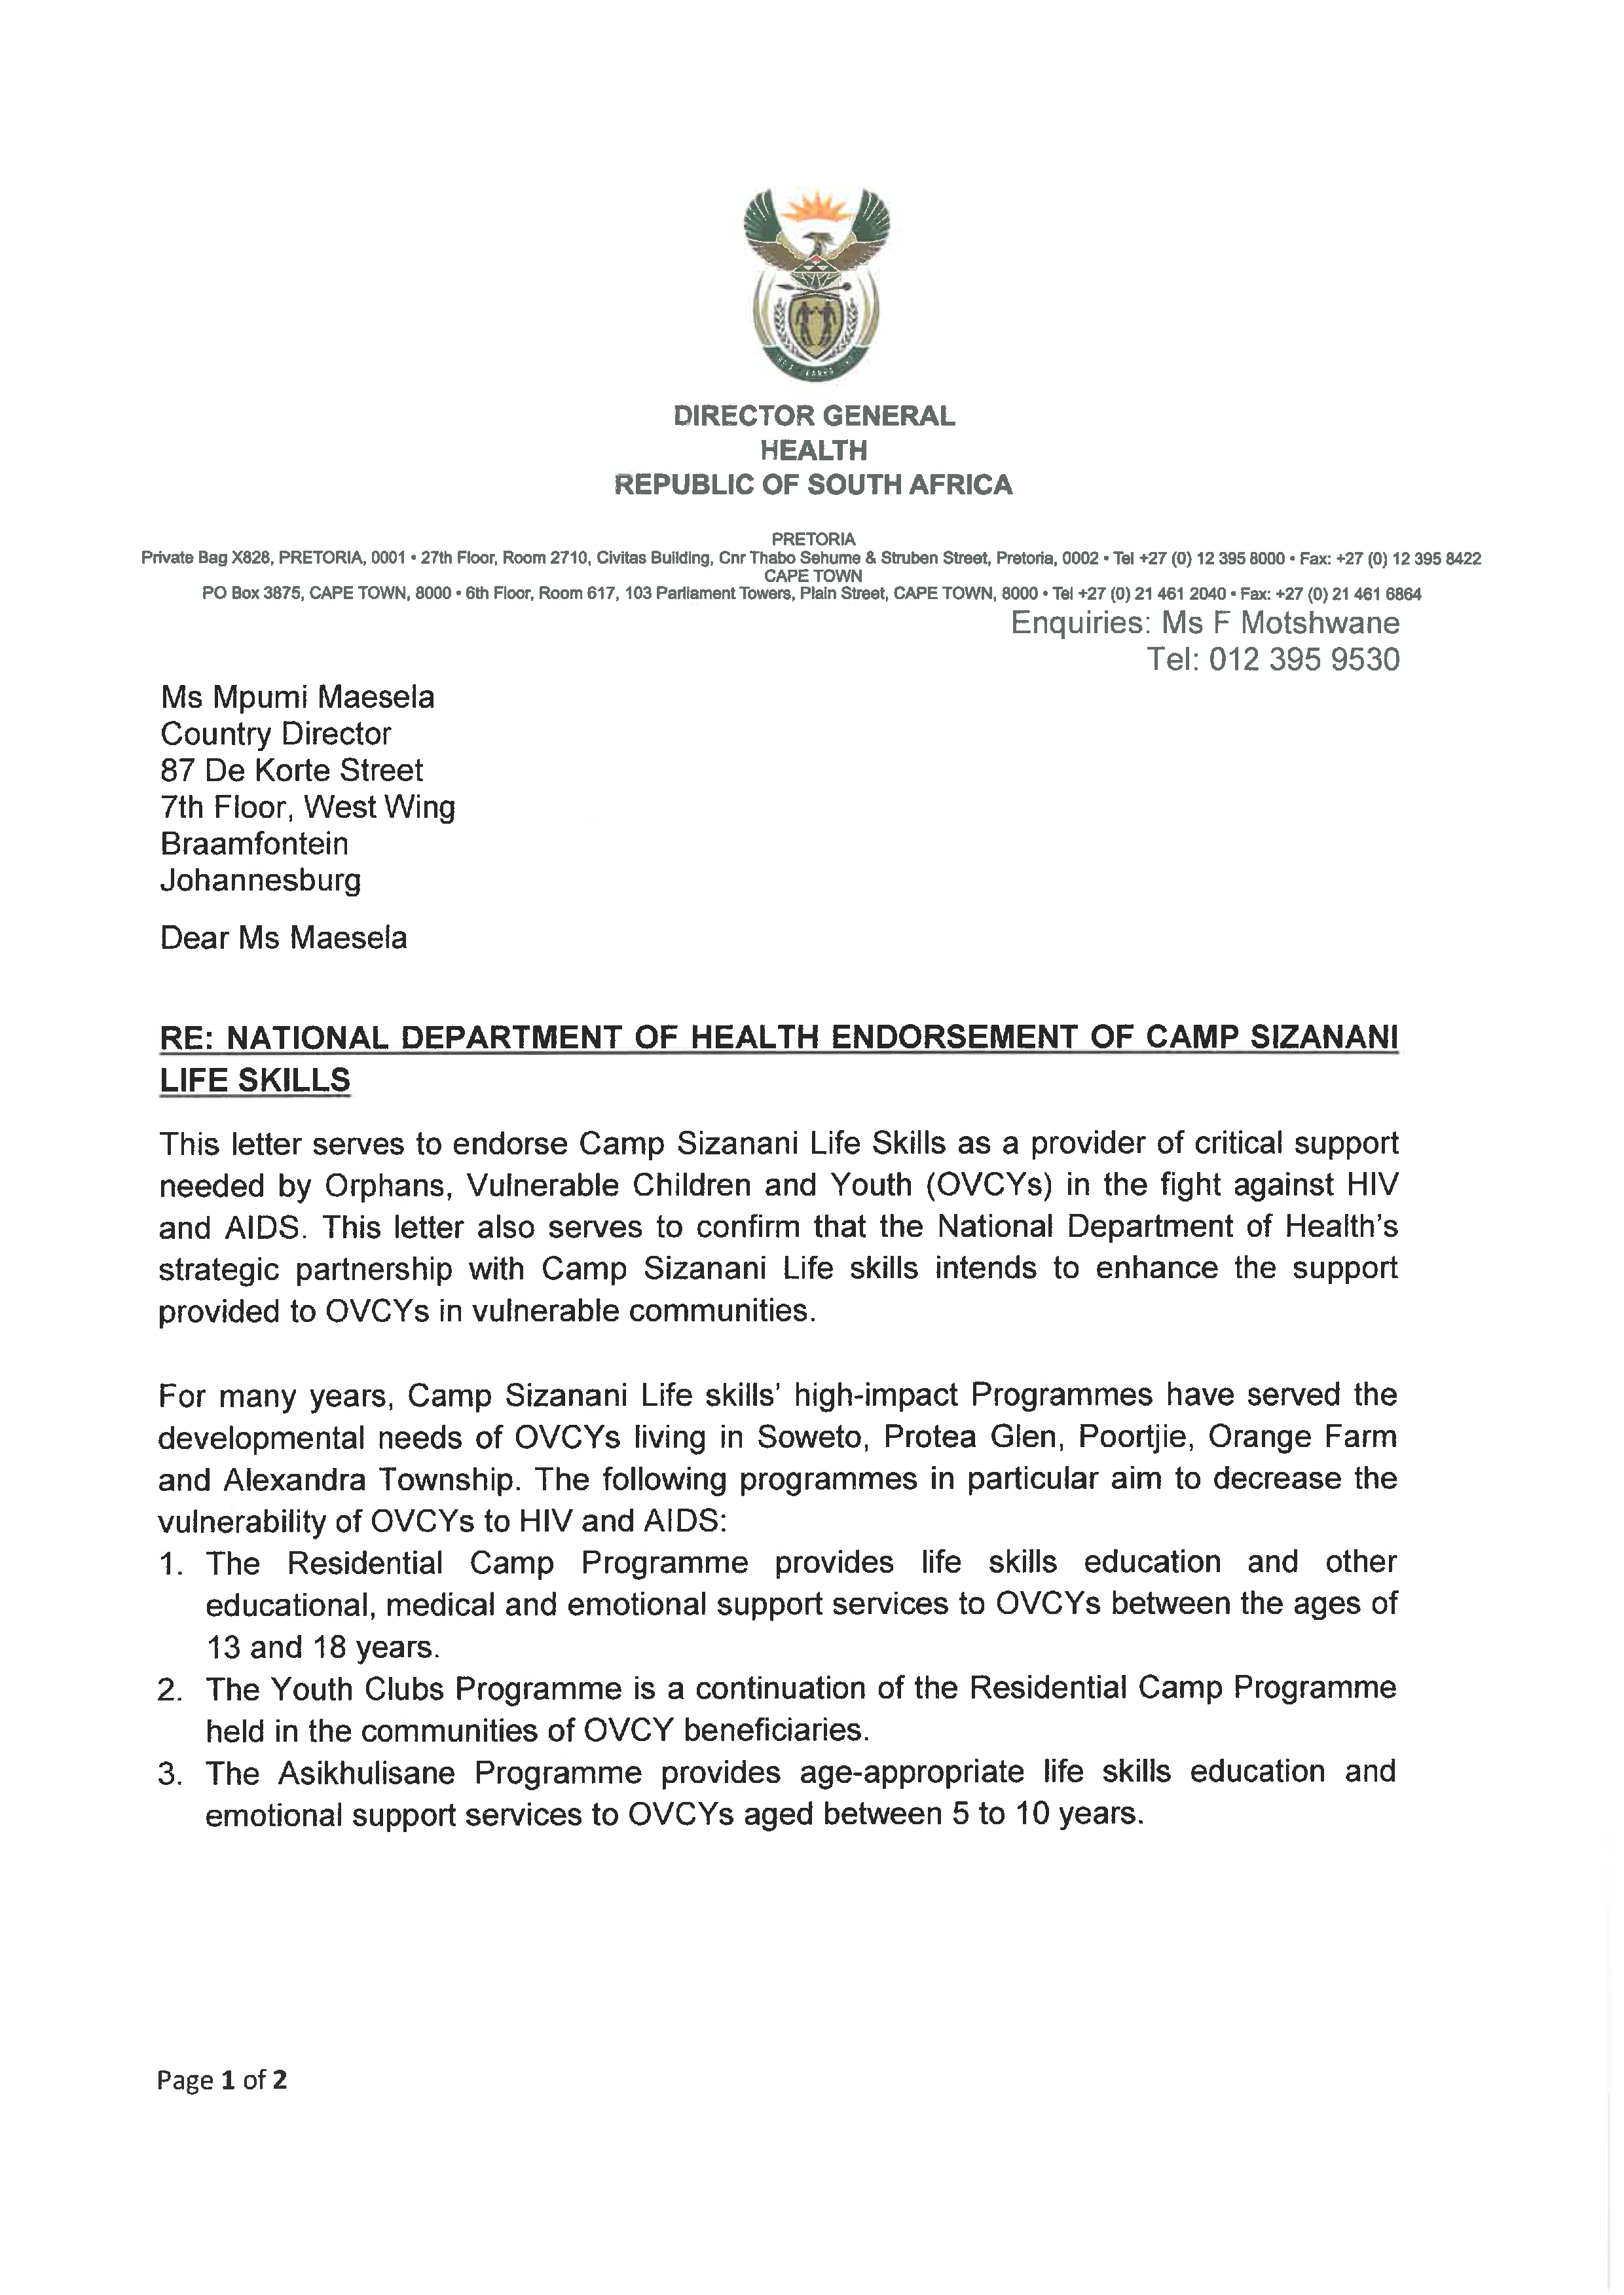 Dept. of Health Letter 2019_Page_1.png